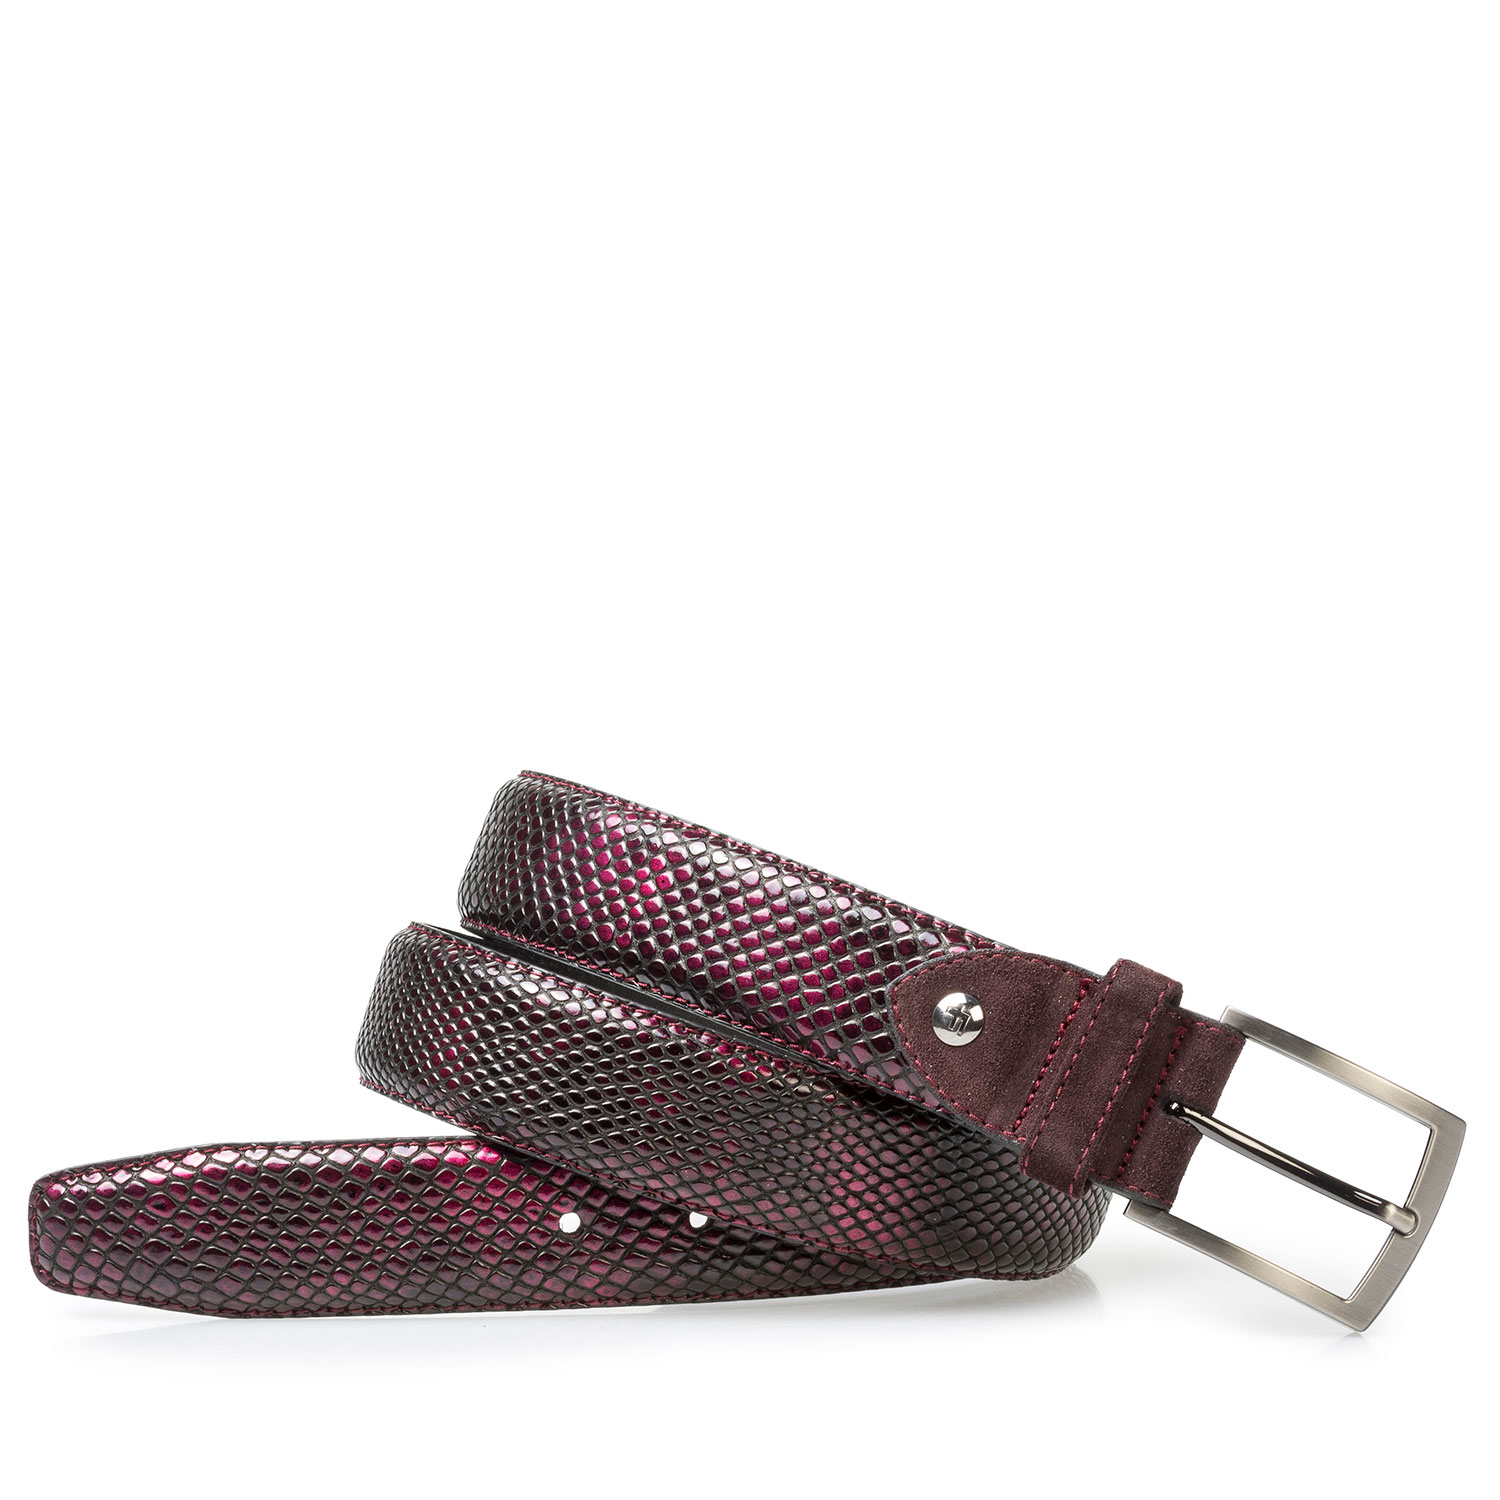 75212/00 - Red printed patent leather belt